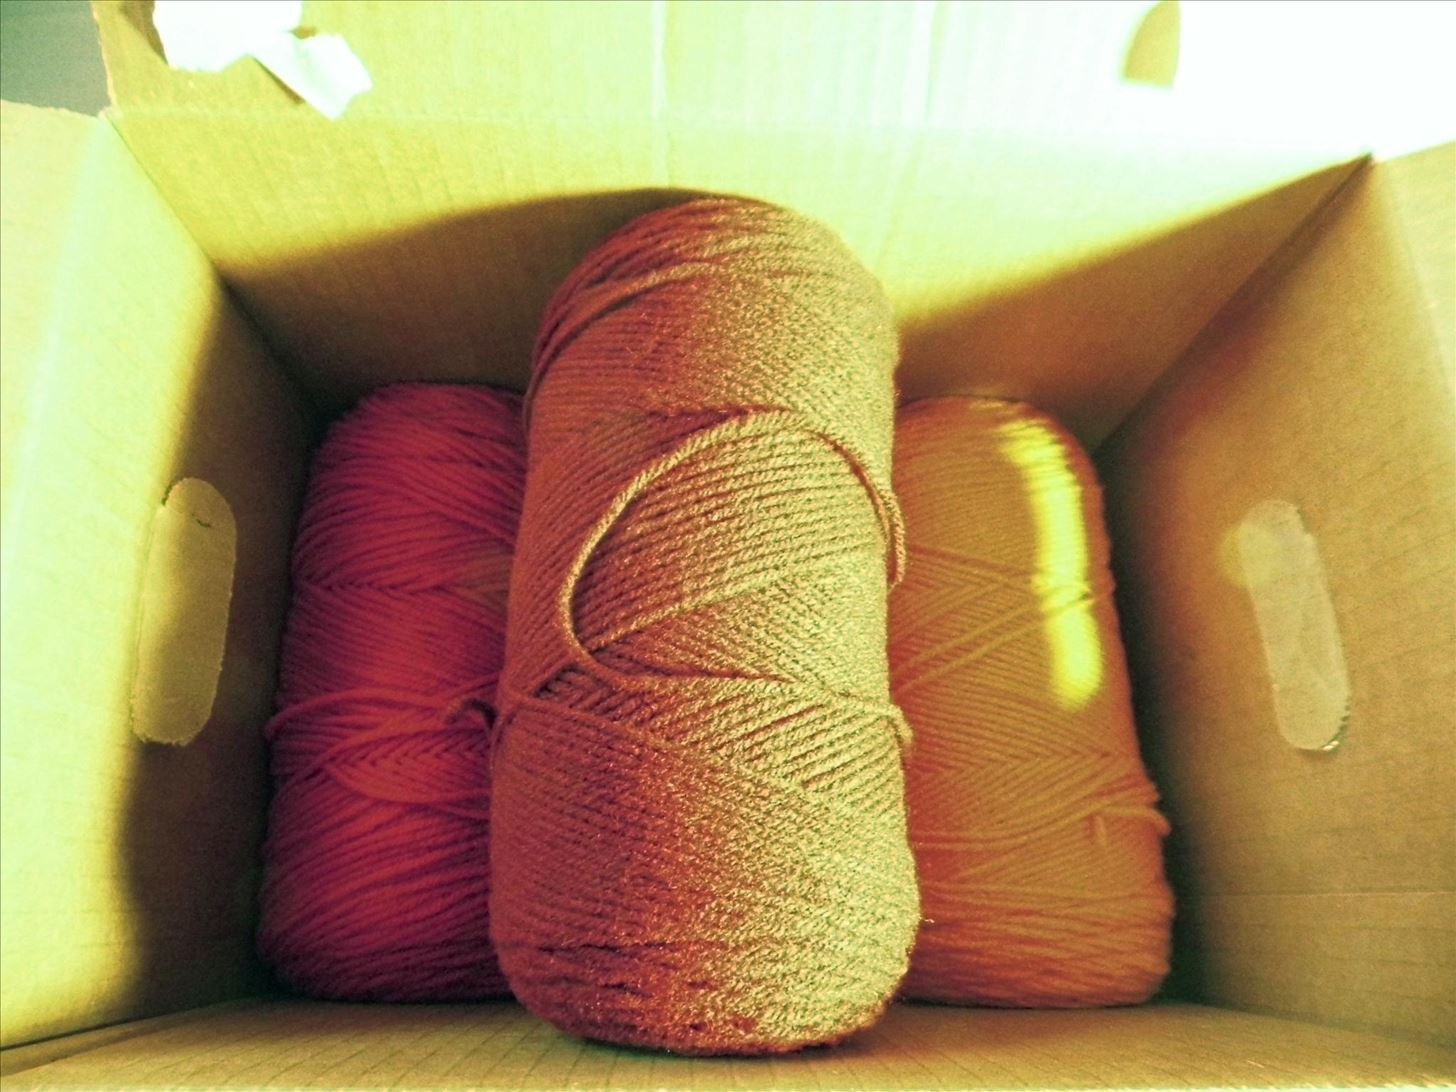 How to Make a Yarn Dispensing Display Out of a Cardboard Box and Dowels